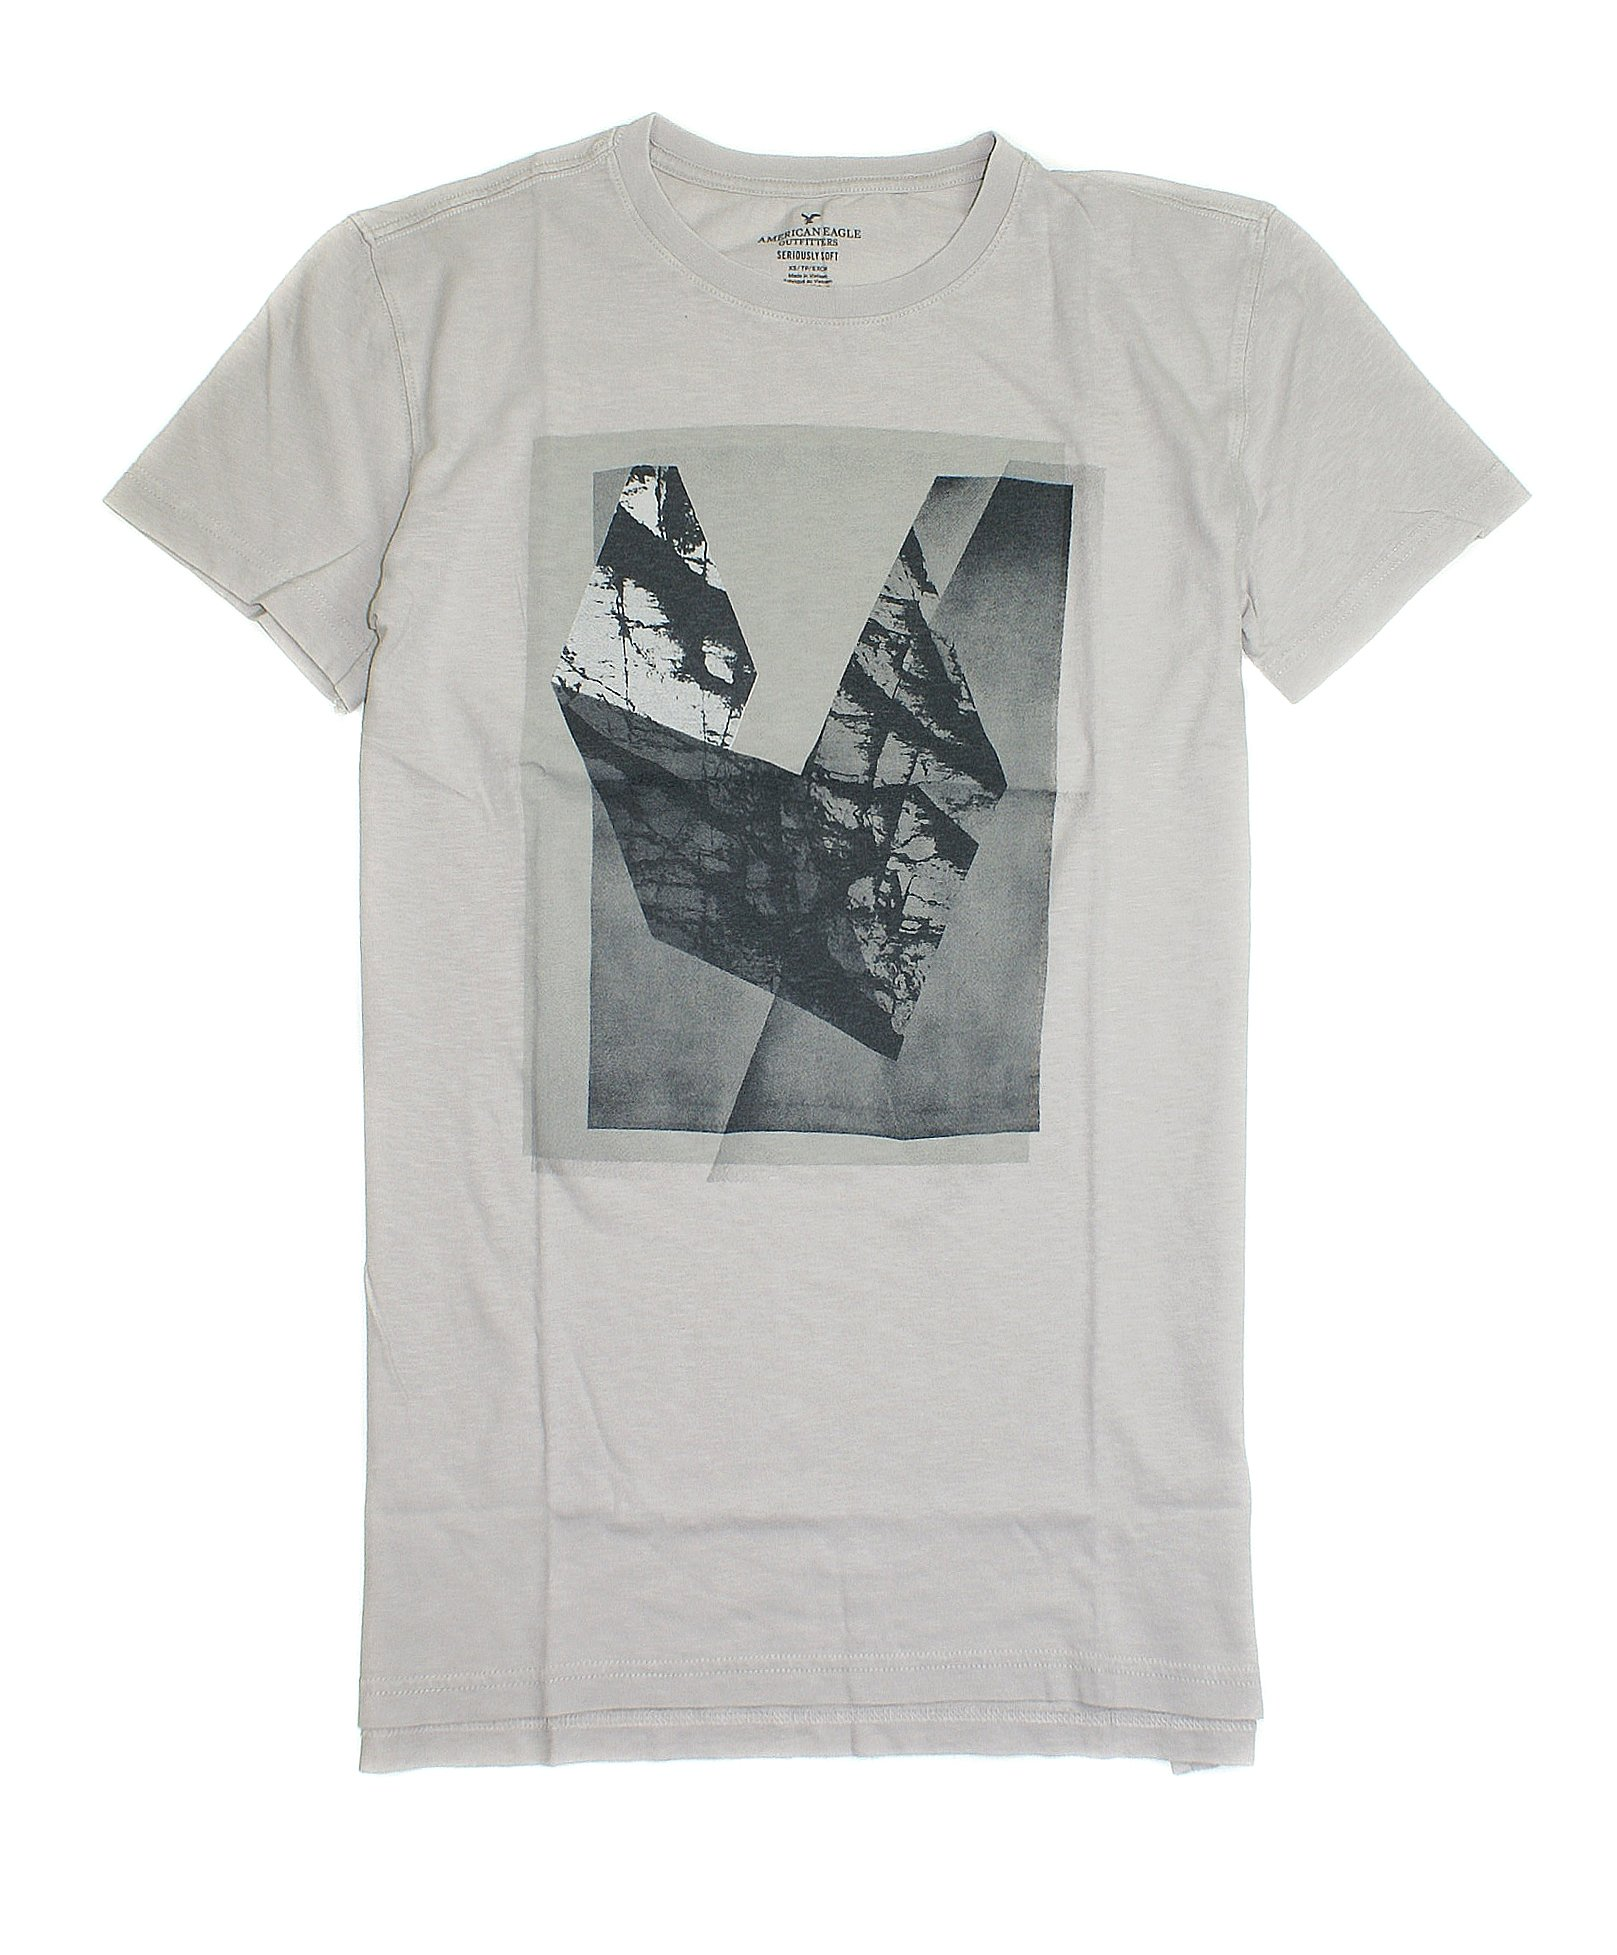 American Eagle Seriously Soft Graphic T Shirt 019 Tall Stone 2509